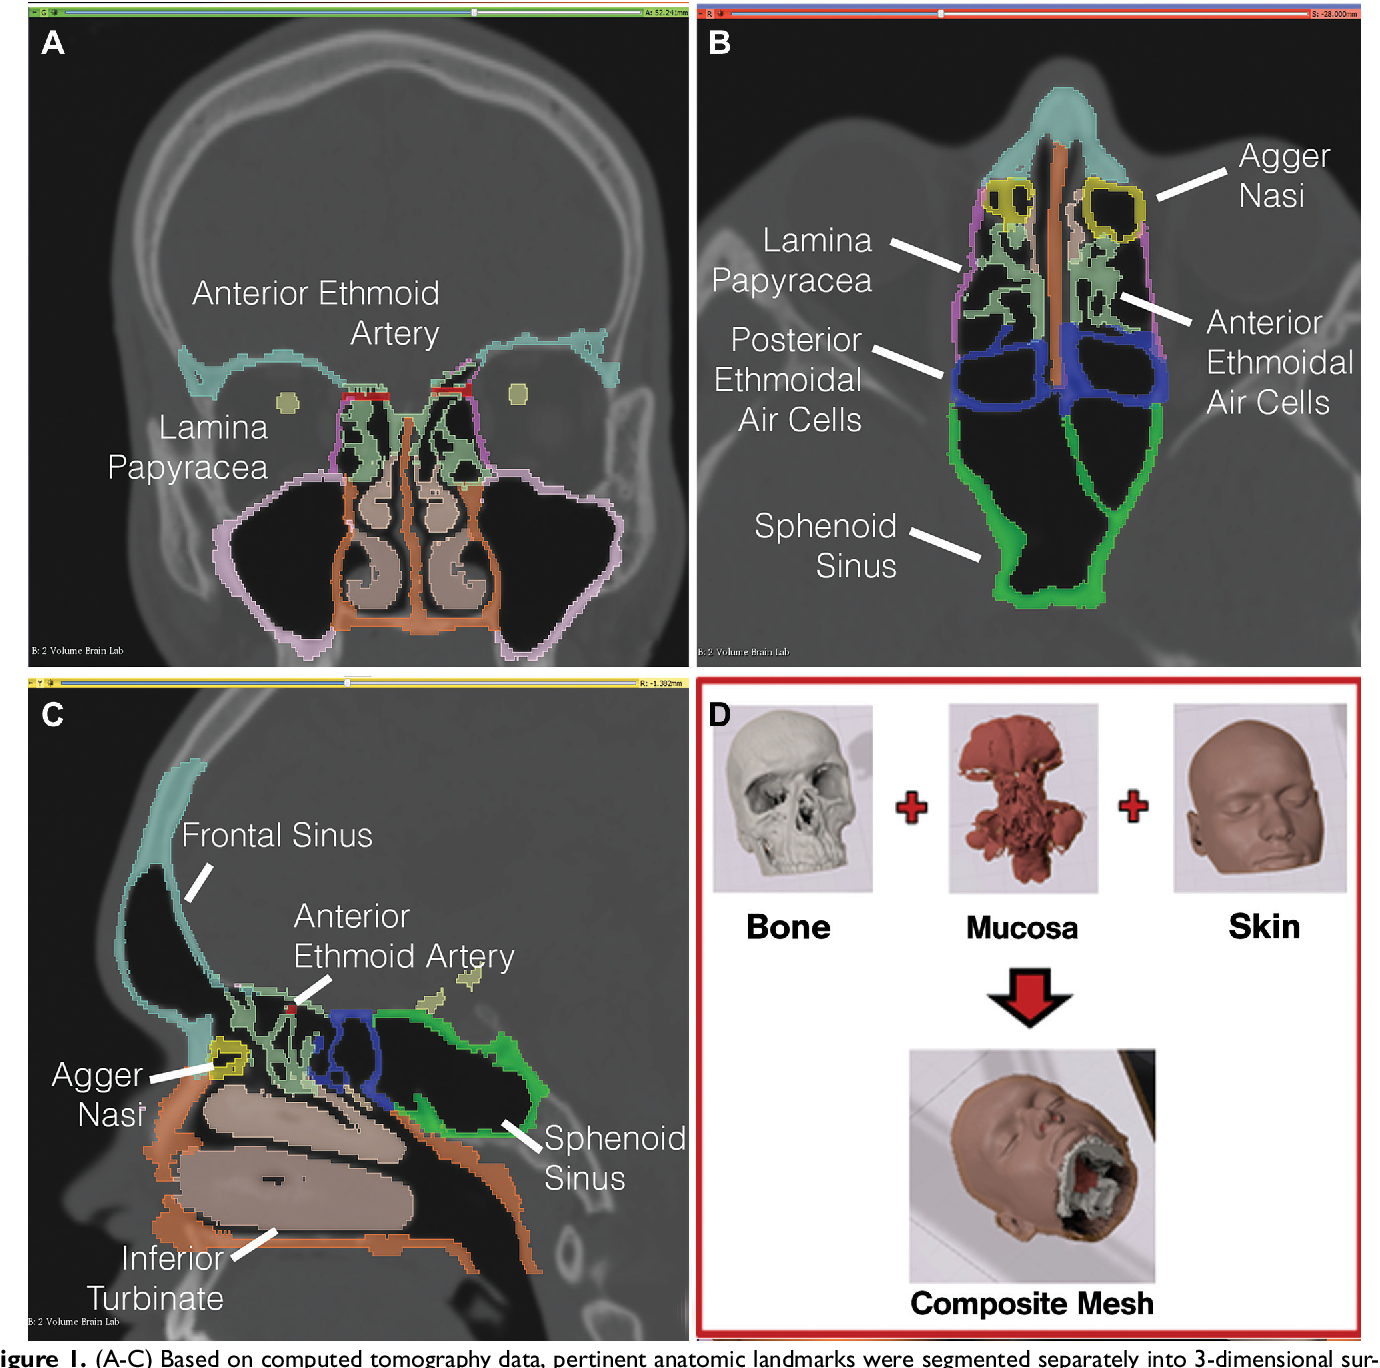 Pdf Virtual Functional Endoscopic Sinus Surgery Simulation With 3d Printed Models For Mixed Reality Nasal Endoscopy Semantic Scholar